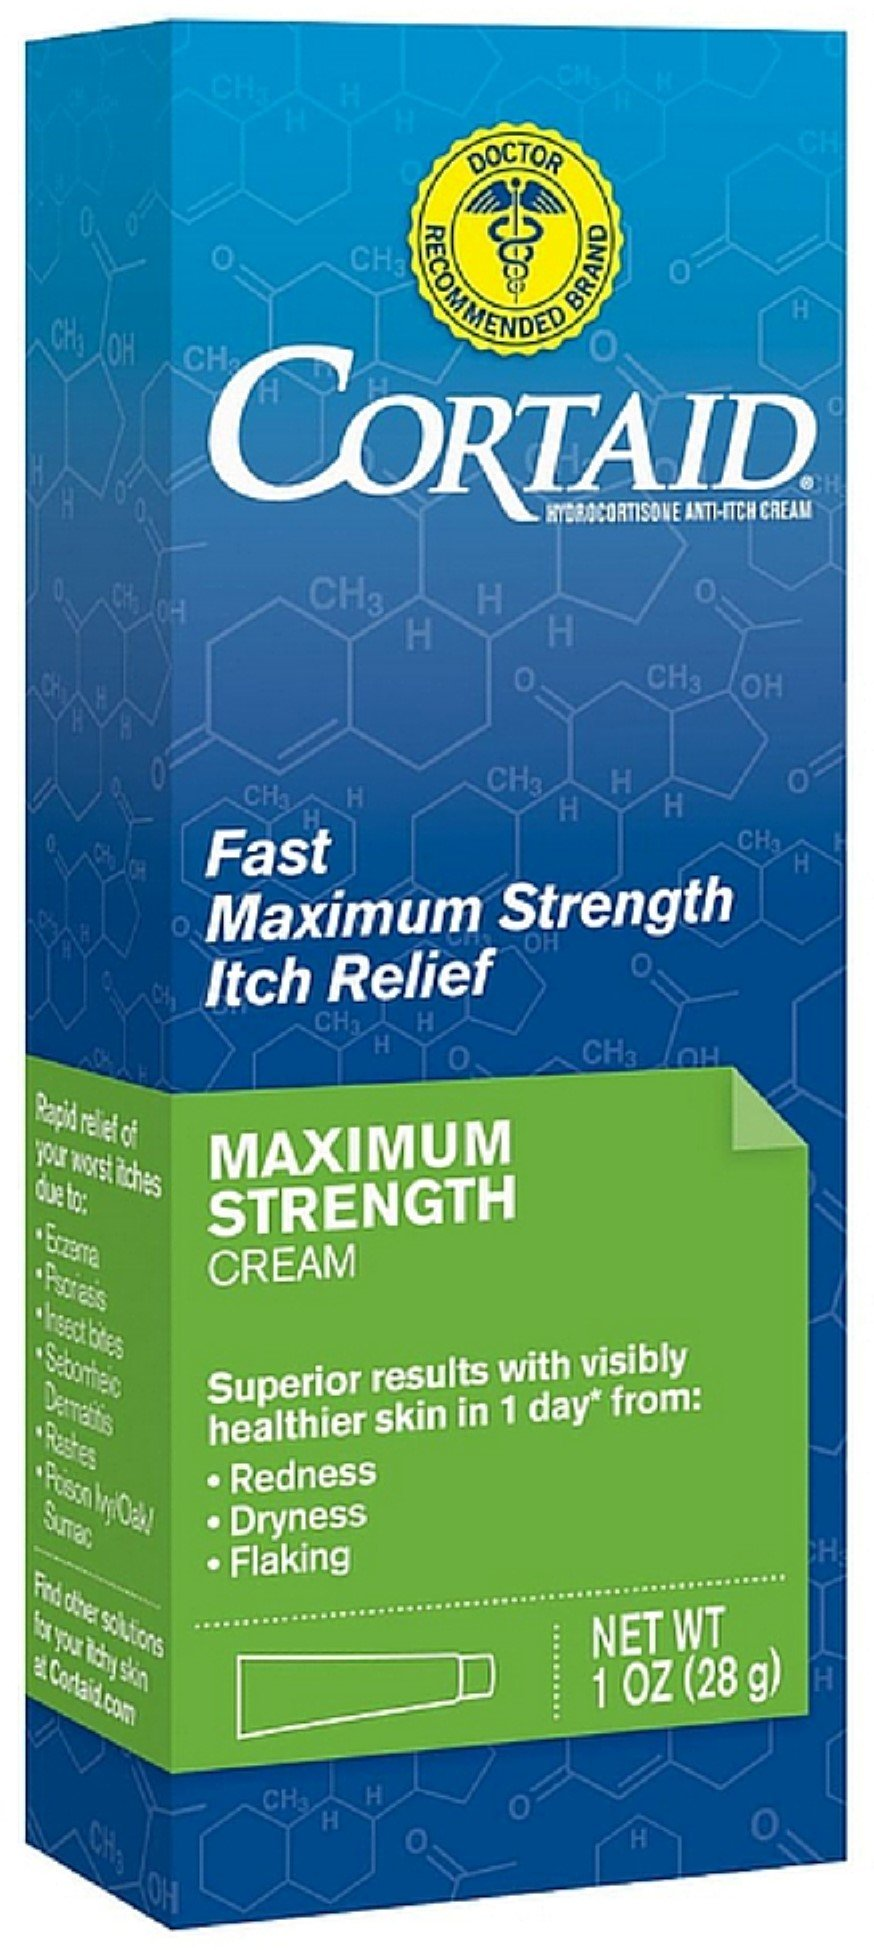 CORTAID Fast Maximum Strength Itch Relief Cream 1 oz (Pack of 10)